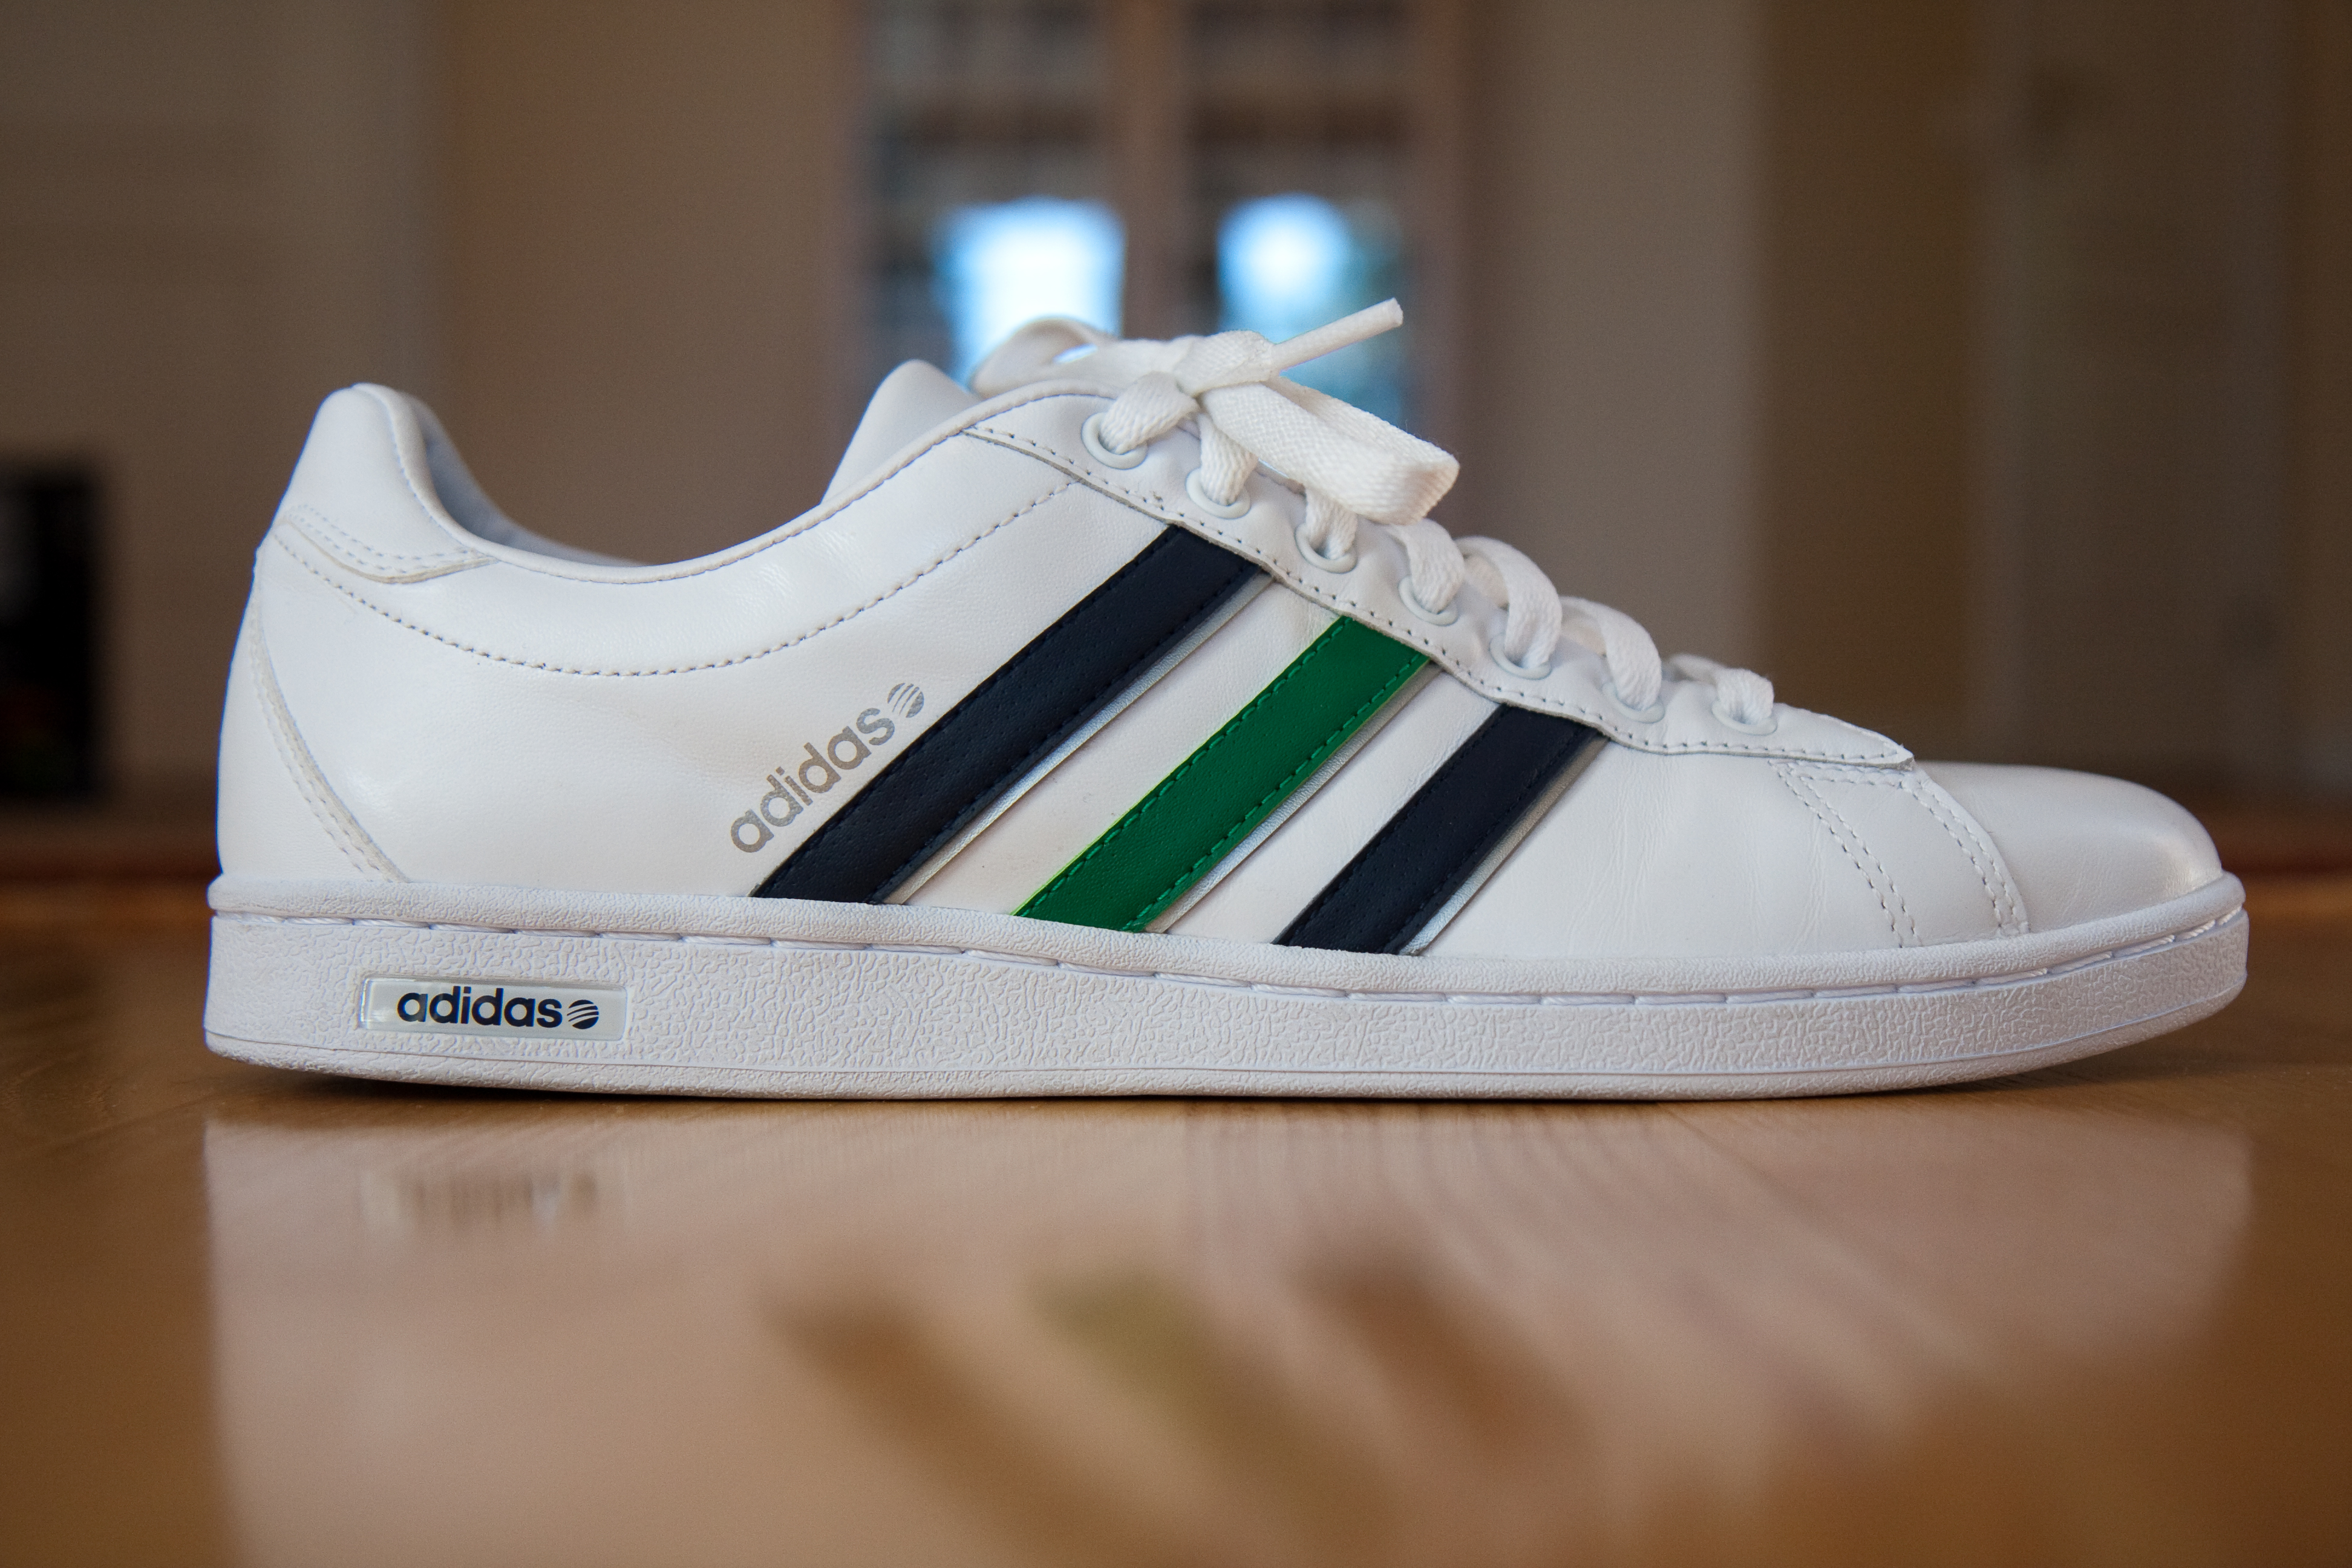 http://upload.wikimedia.org/wikipedia/commons/a/ae/An_Adidas_shoe.jpg